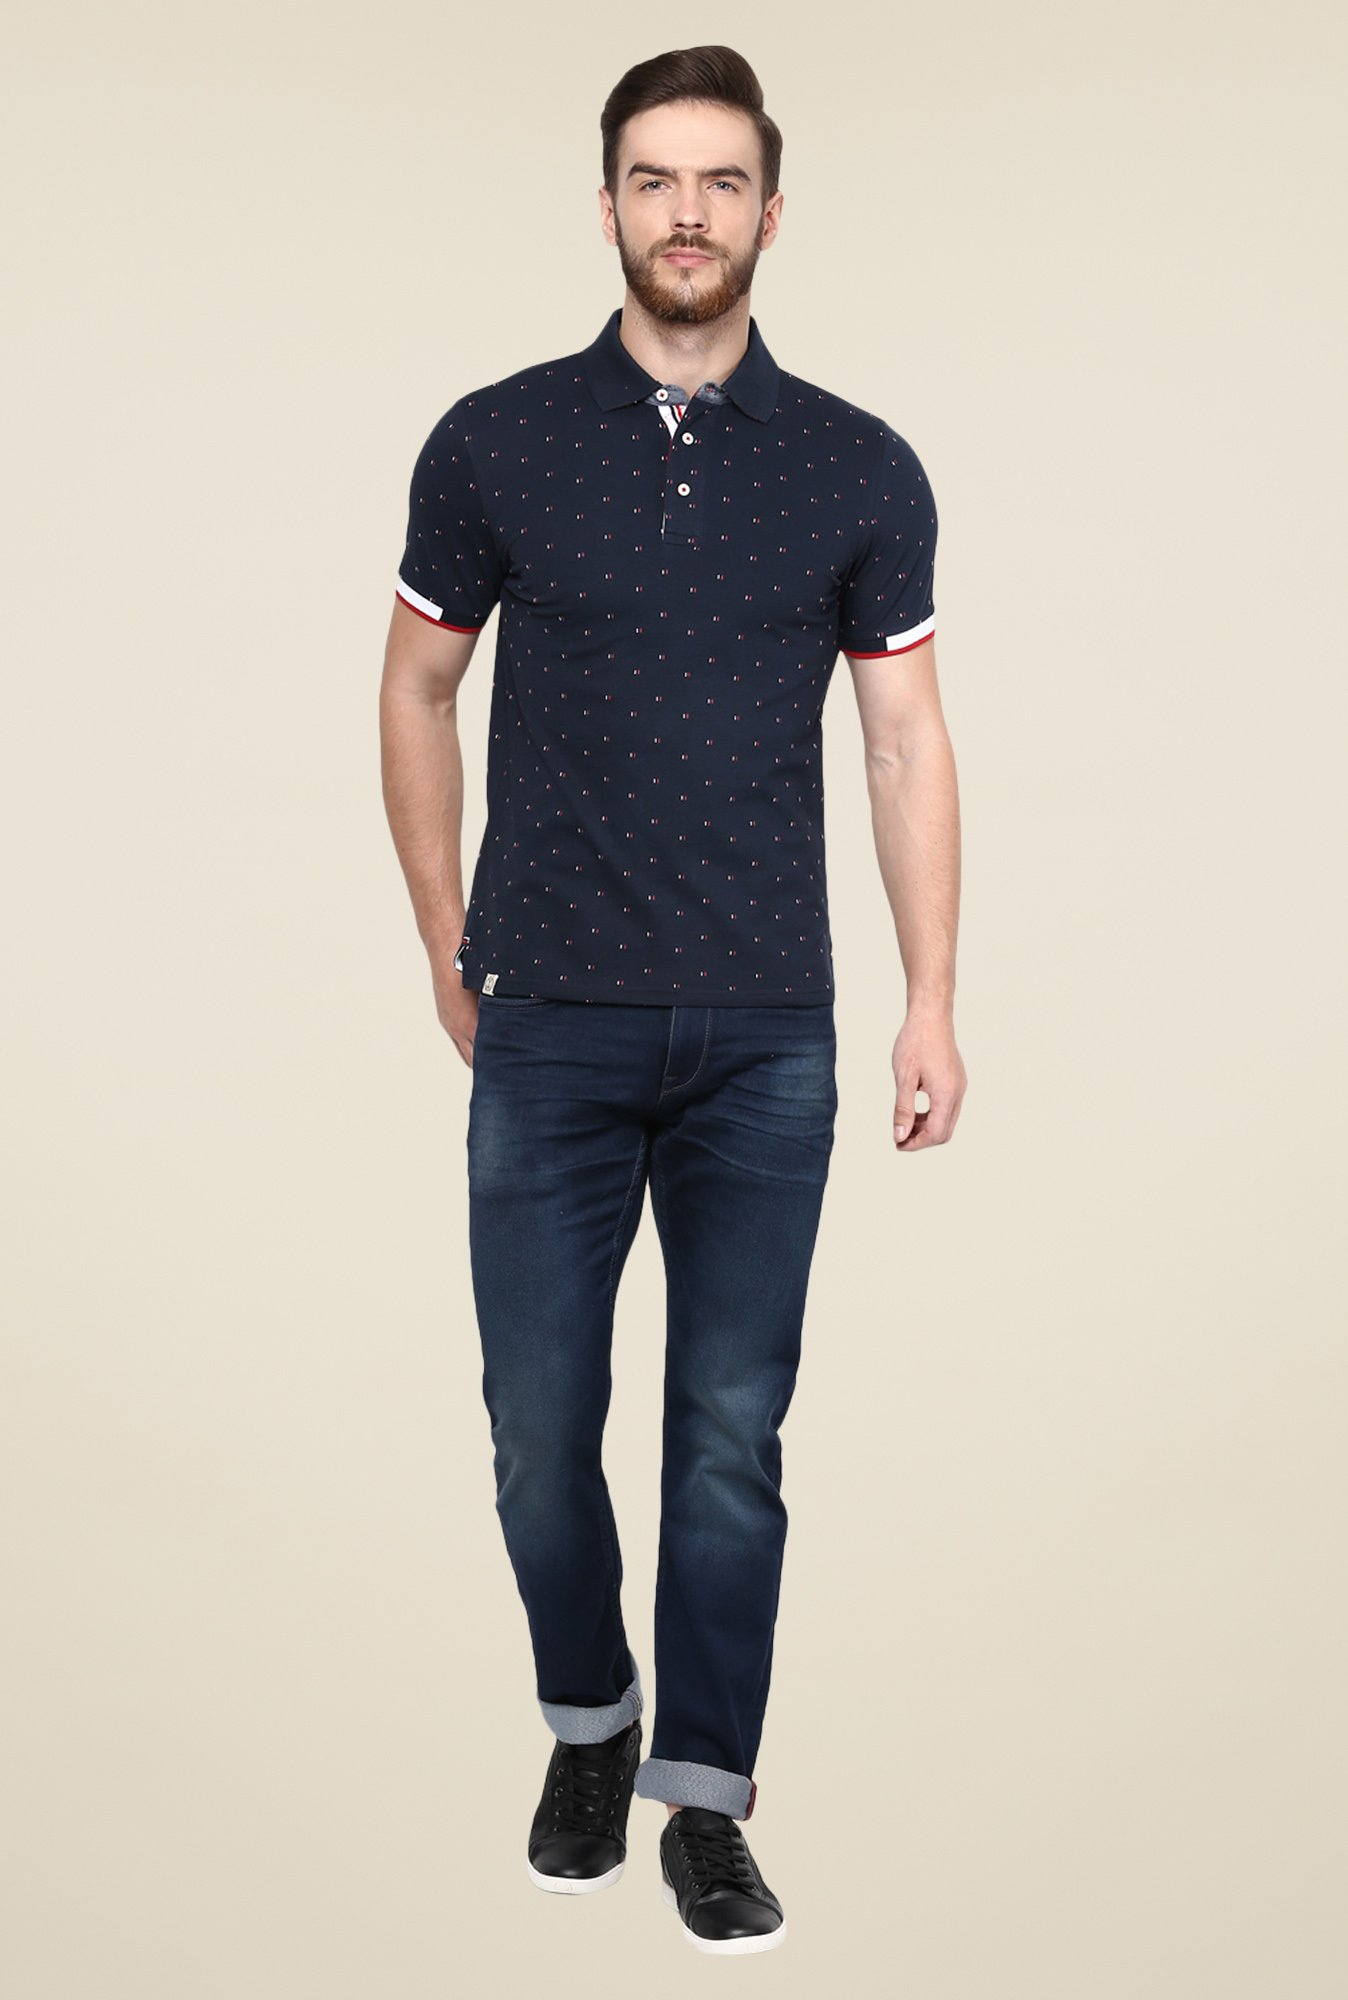 celio* Navy Printed Polo T Shirt